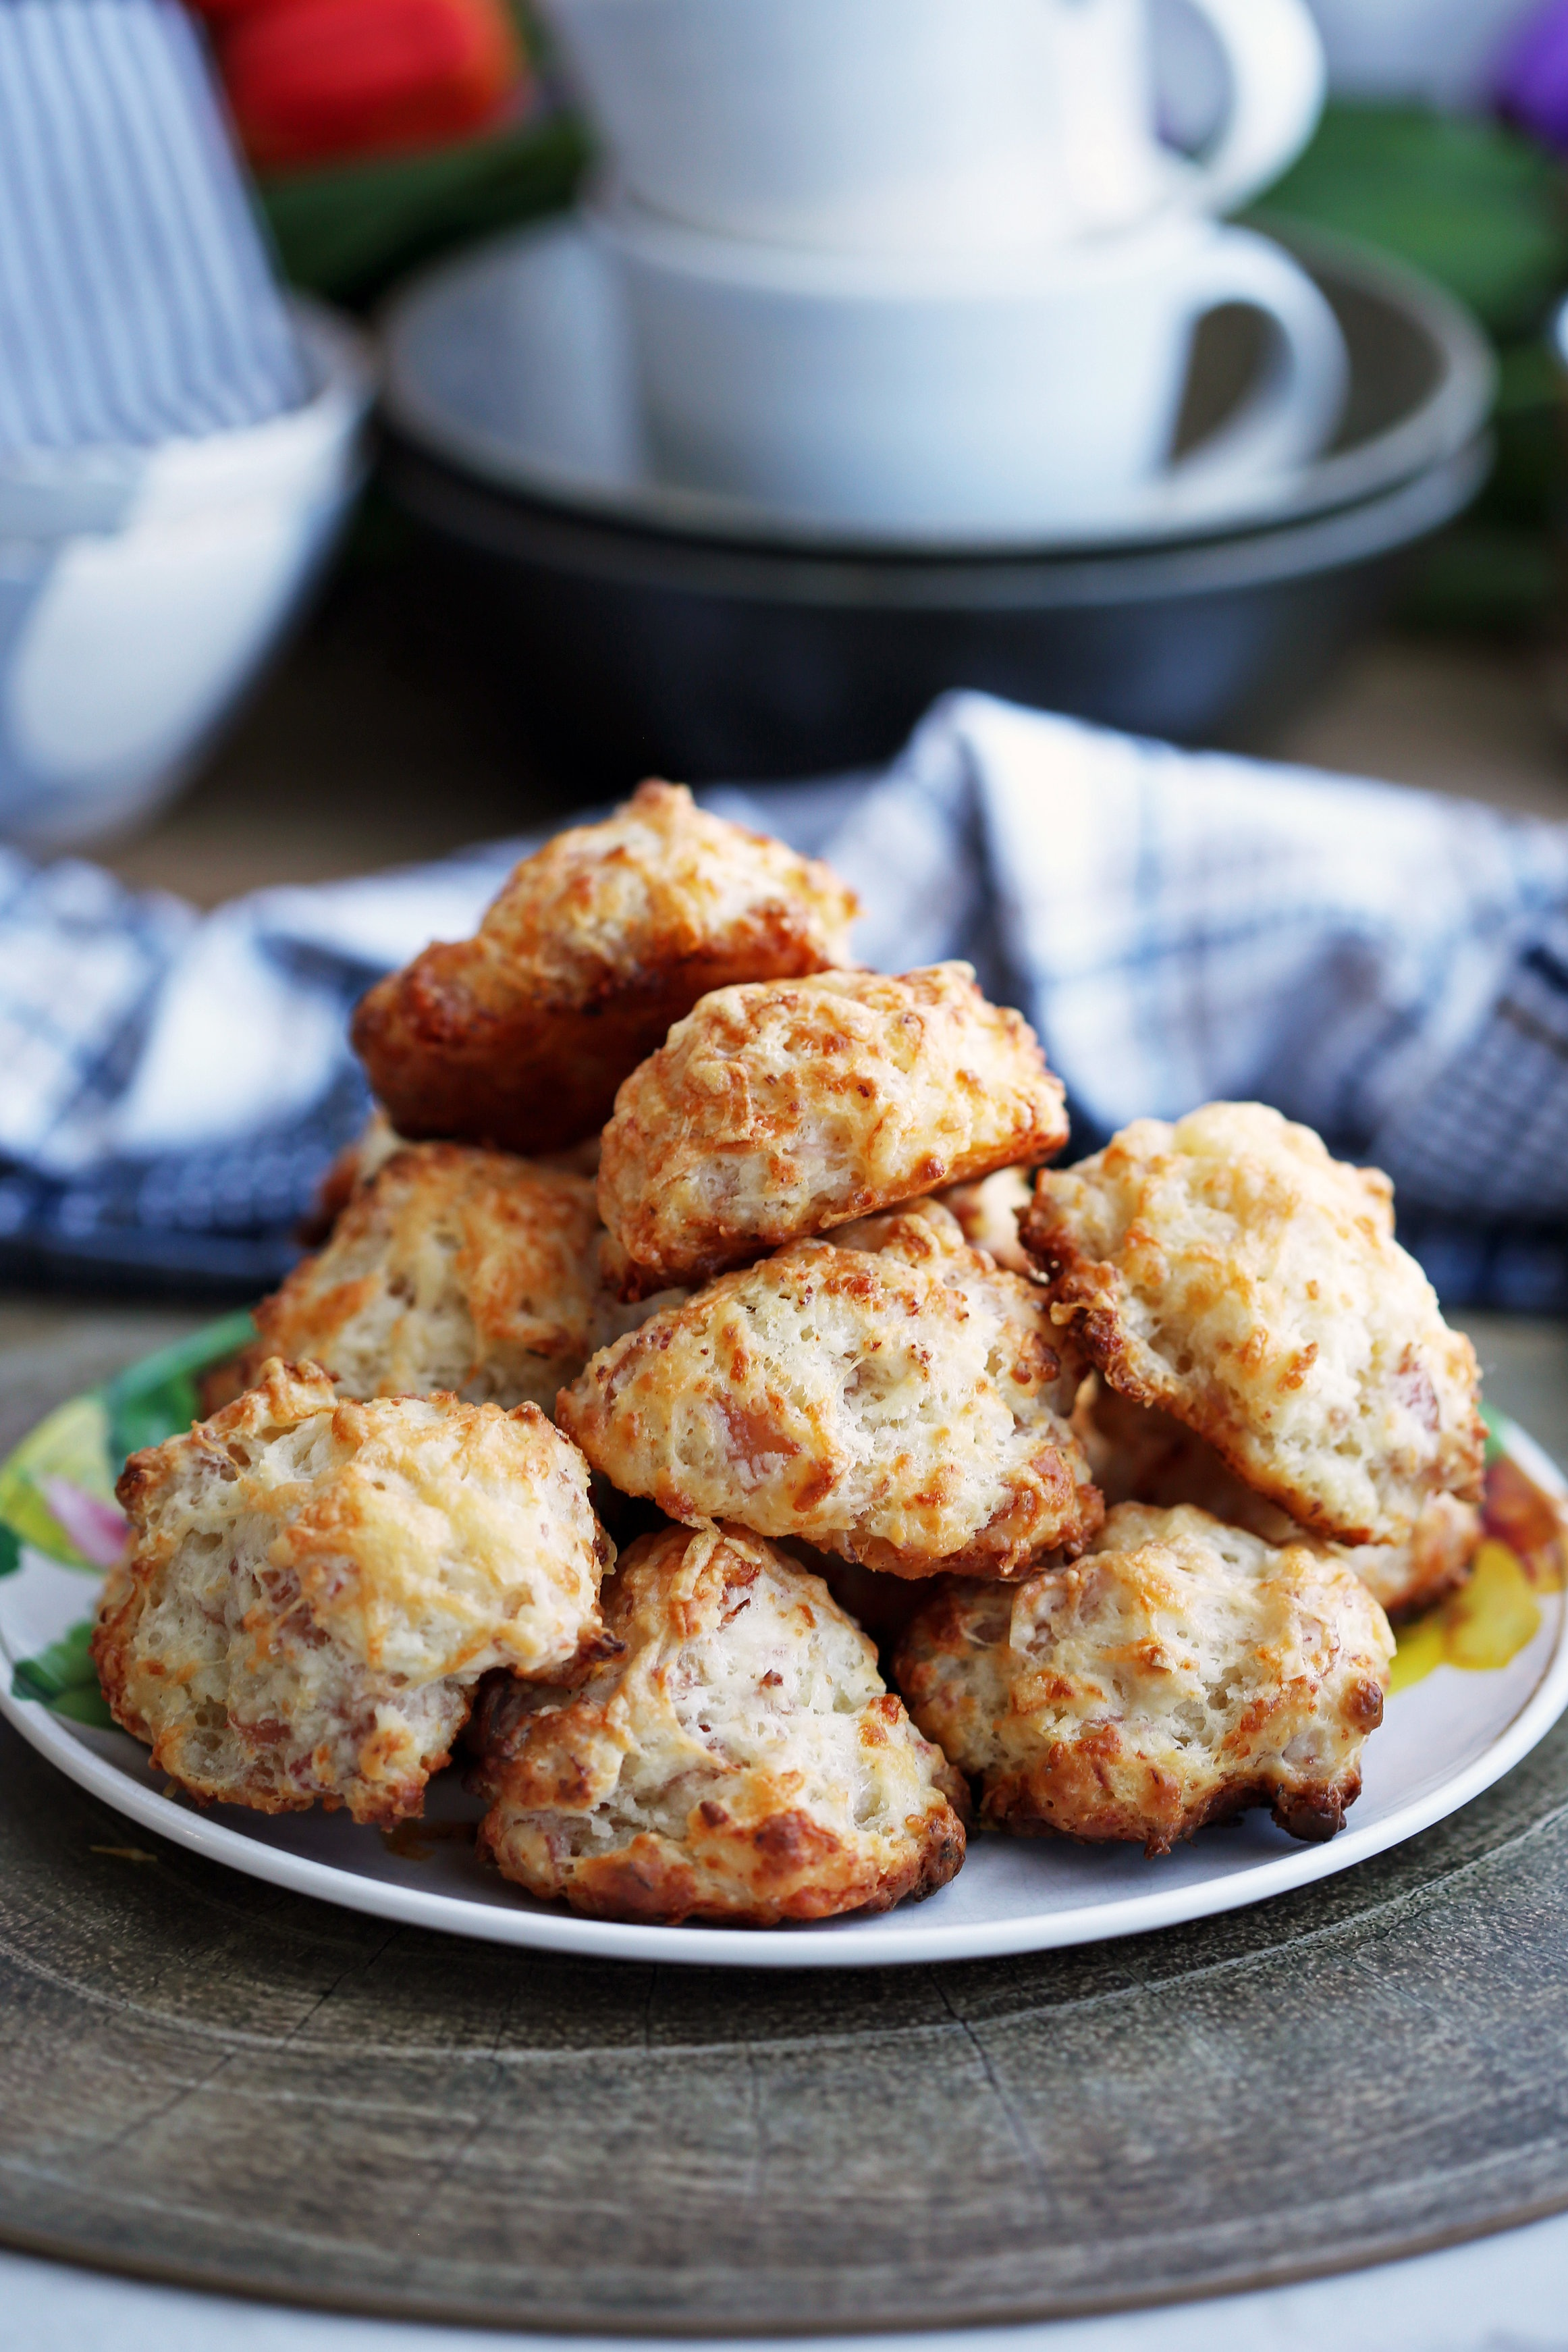 Freshly baked ham and cheese drop biscuits piled on a colourful plate.